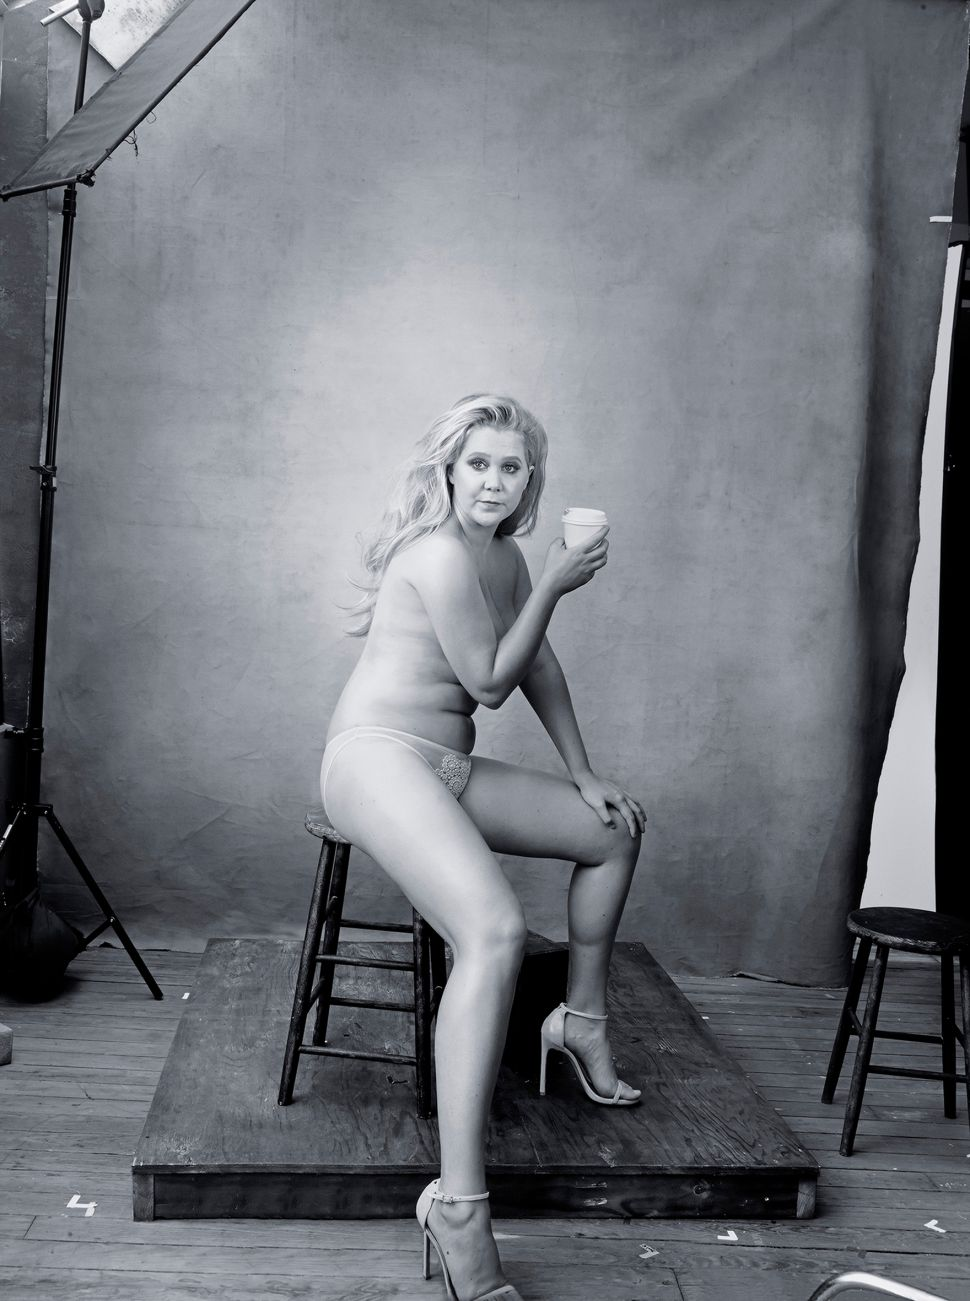 Amy Schumer Goes Topless for the 2016 Pirelli Calendar